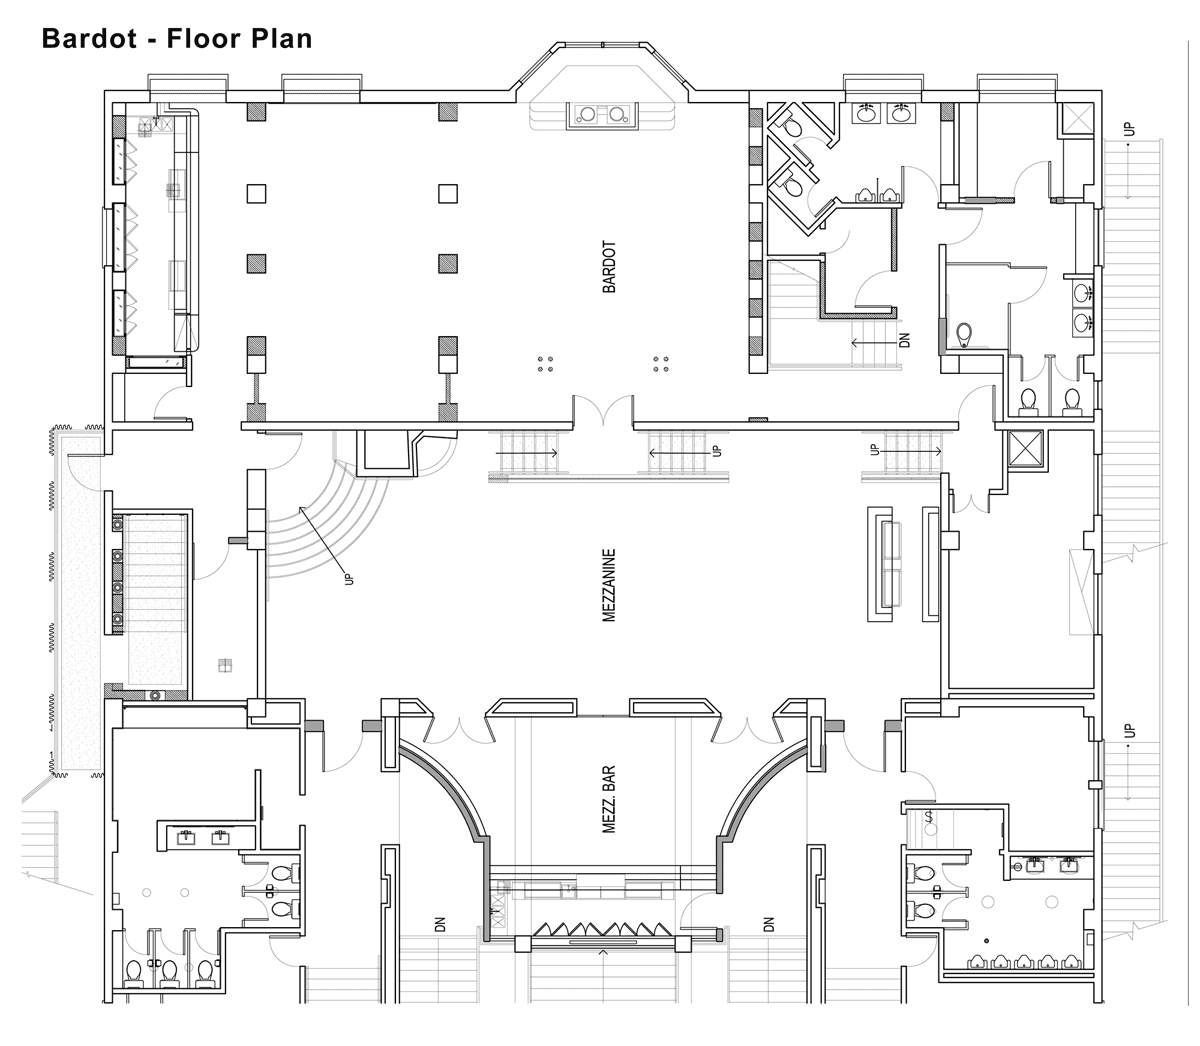 28 Bar Floor Plan Design Sports Bar And Grill Floor